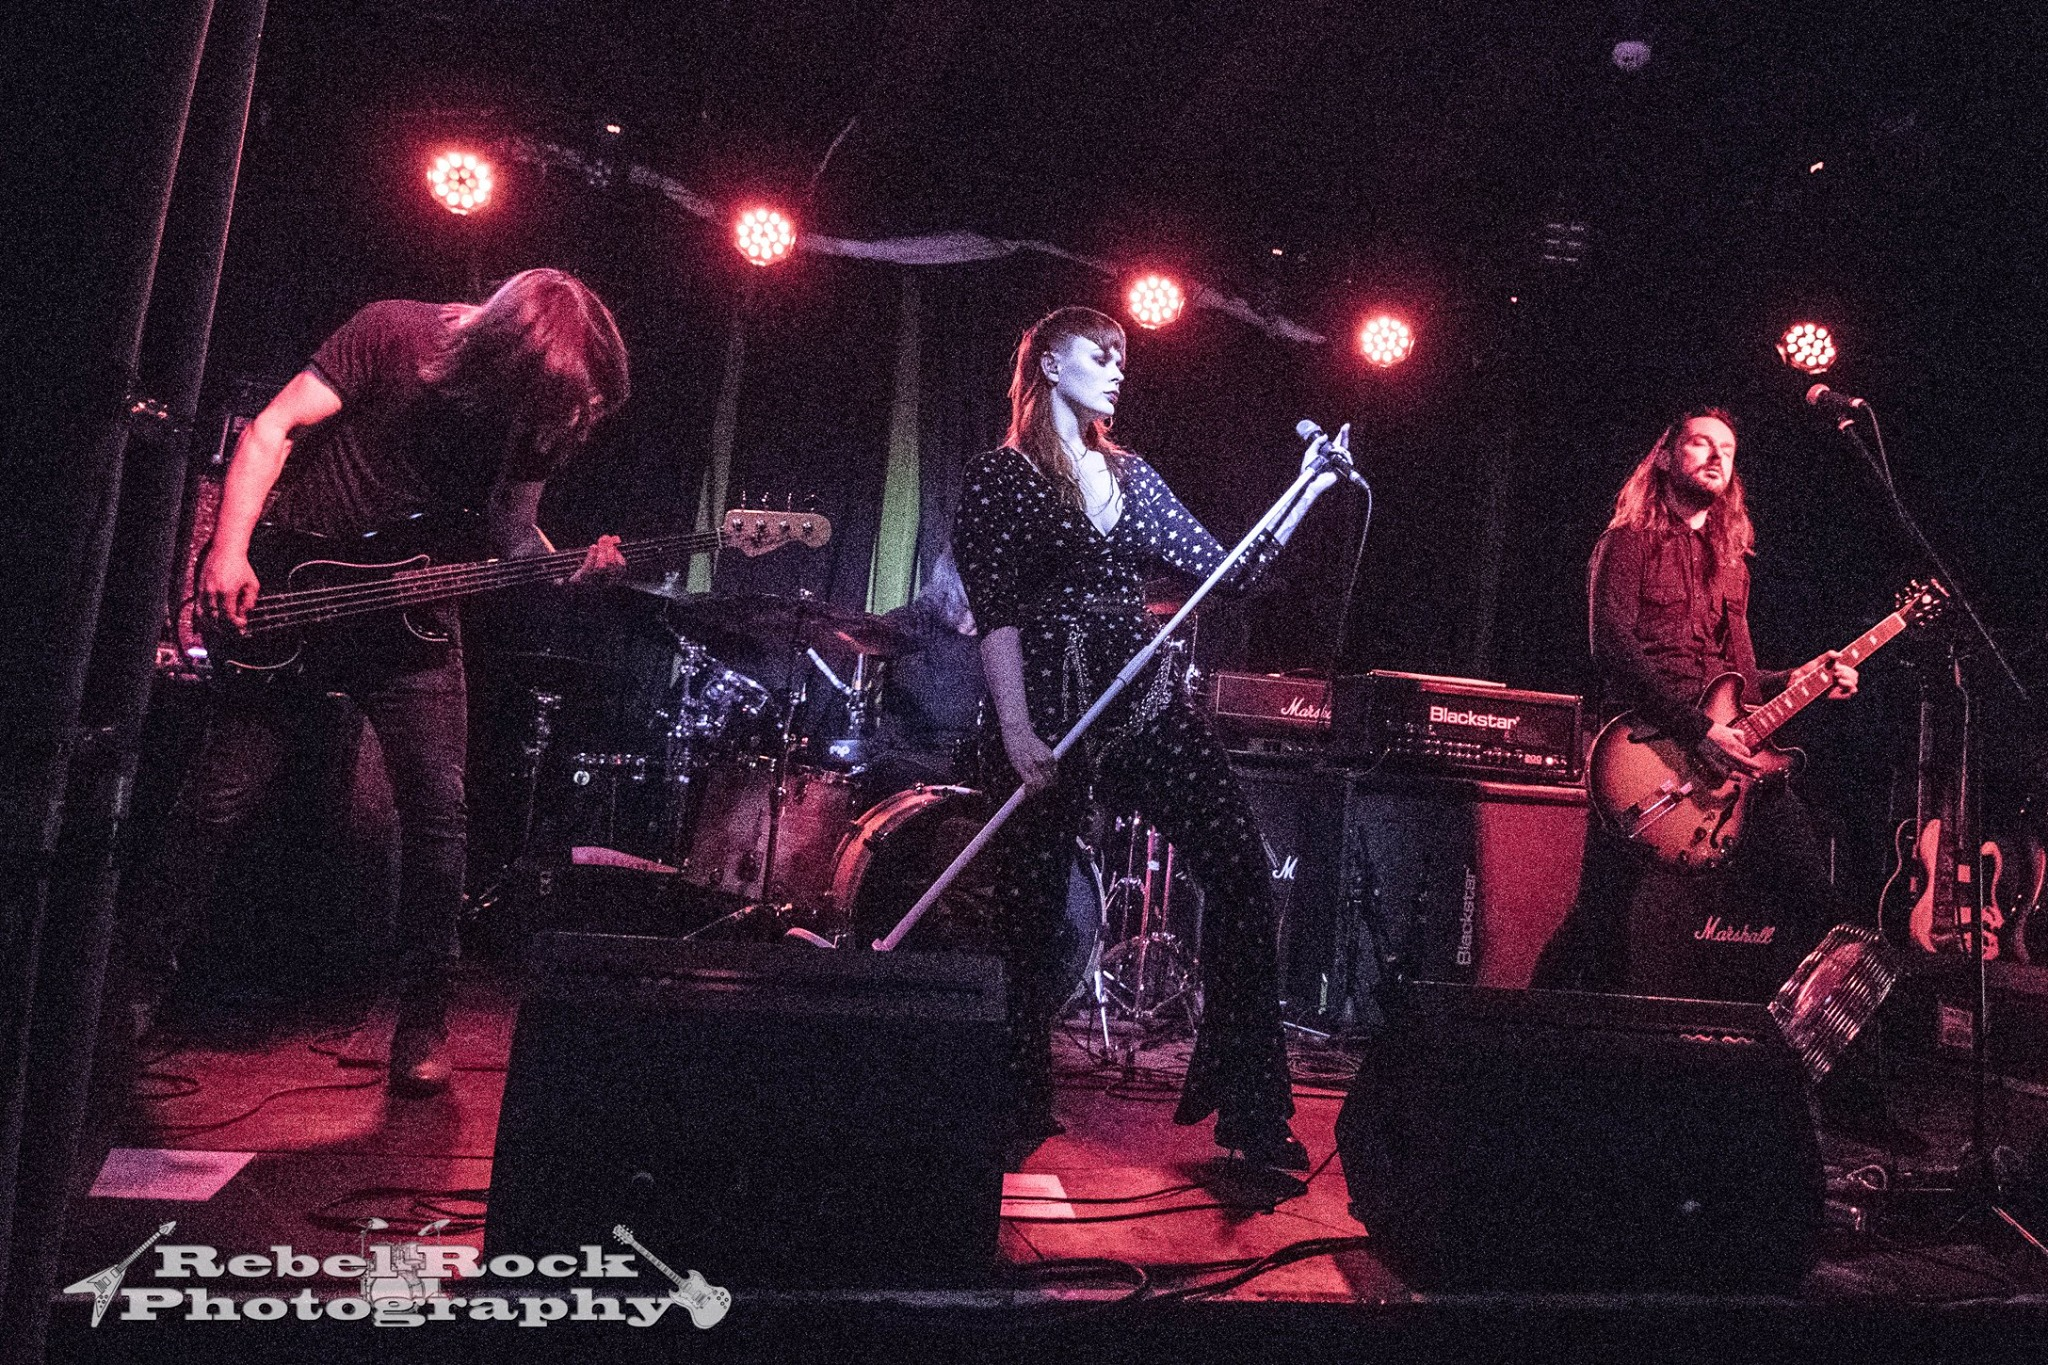 Alunah at Rebellion in Manchester on July 19th 2019